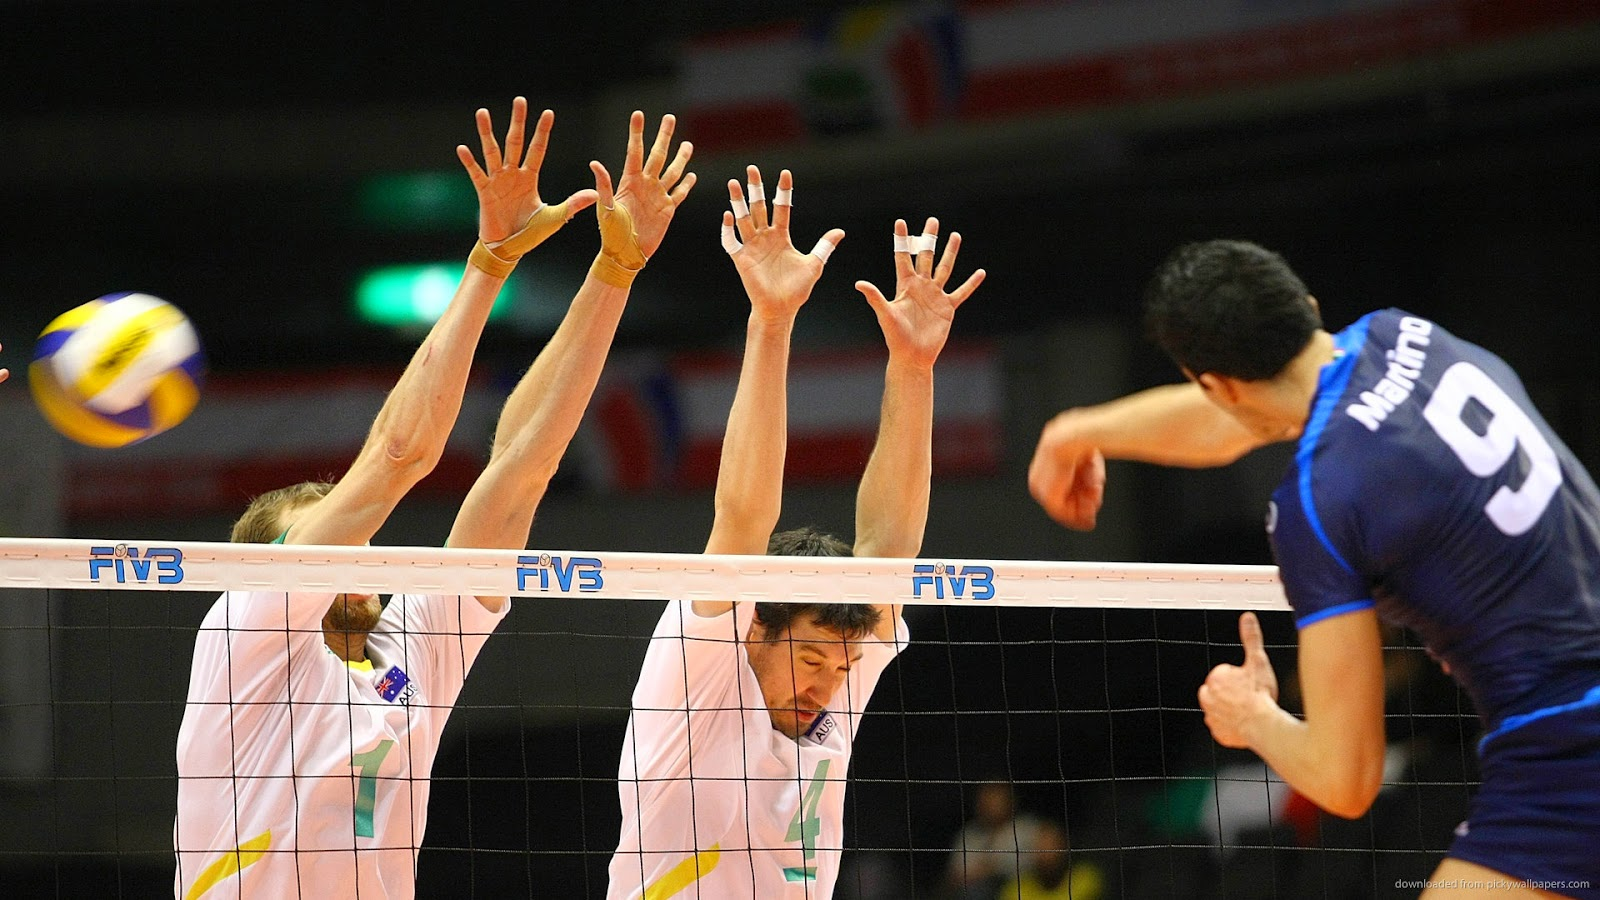 Biomechanics Blog The Volleyball Spike What Are The Biomechanics Underpinning A Powerful And Fast Volleyball Spike